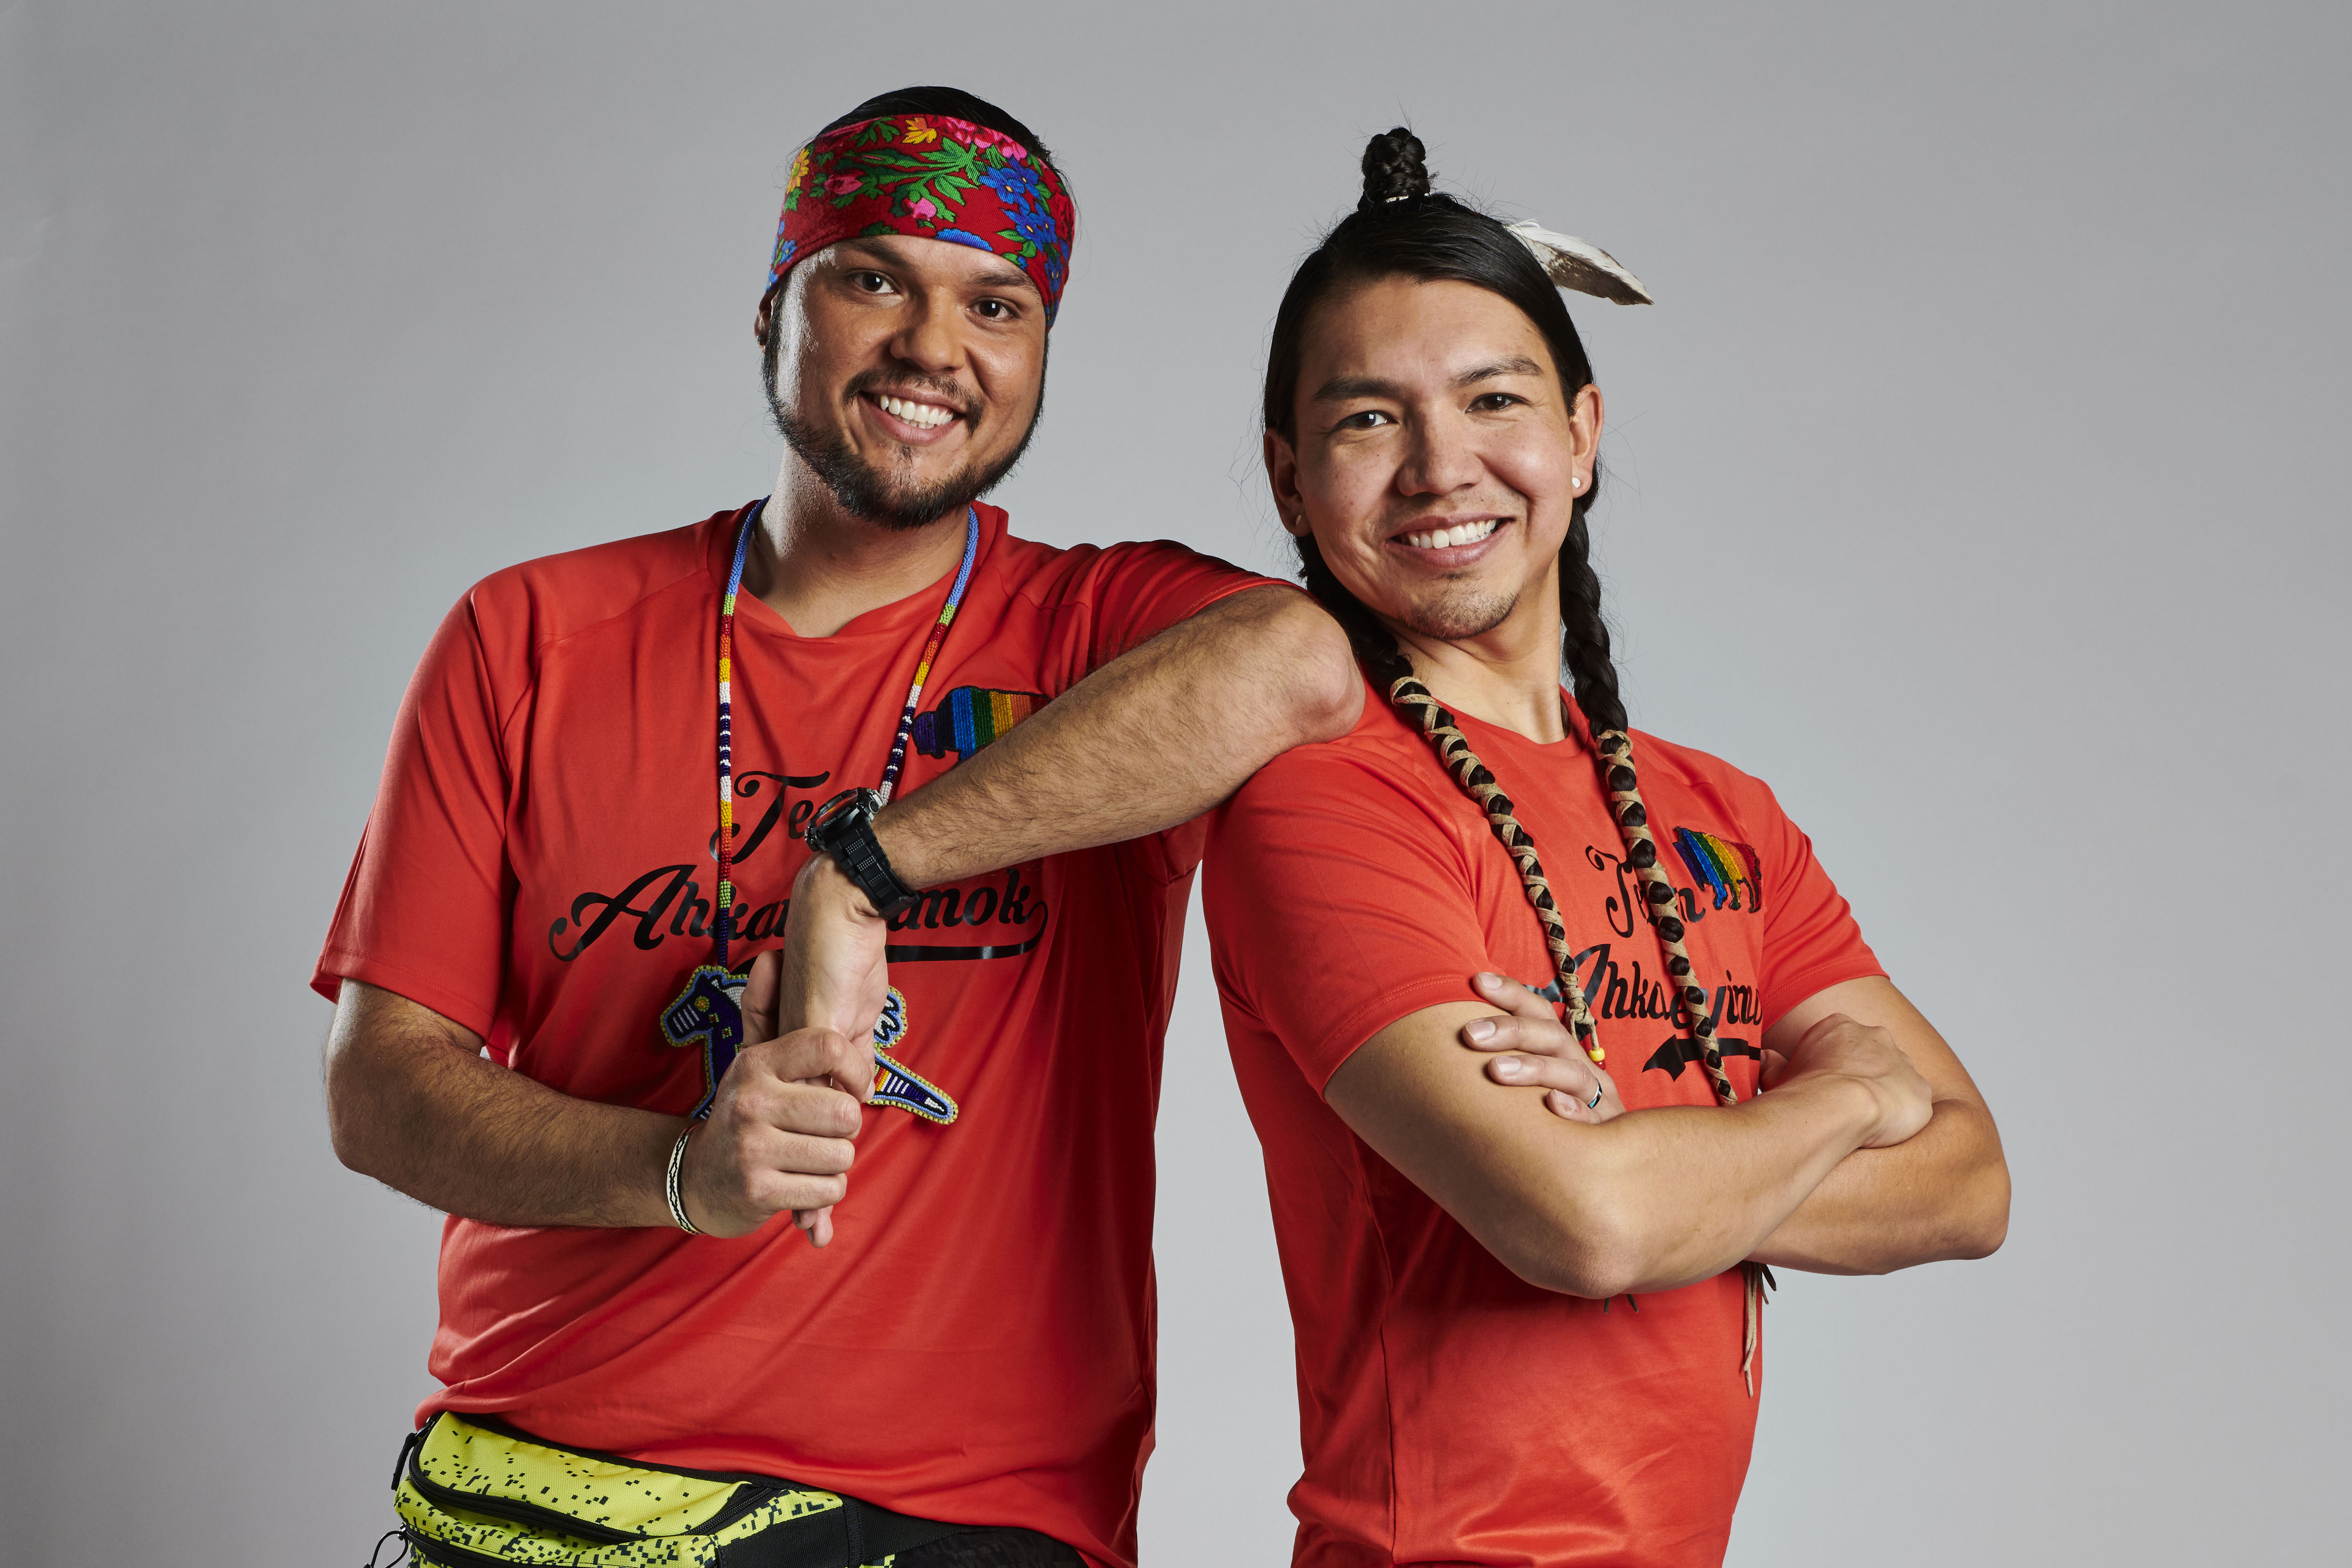 Anthony and James from Amazing Race Canada